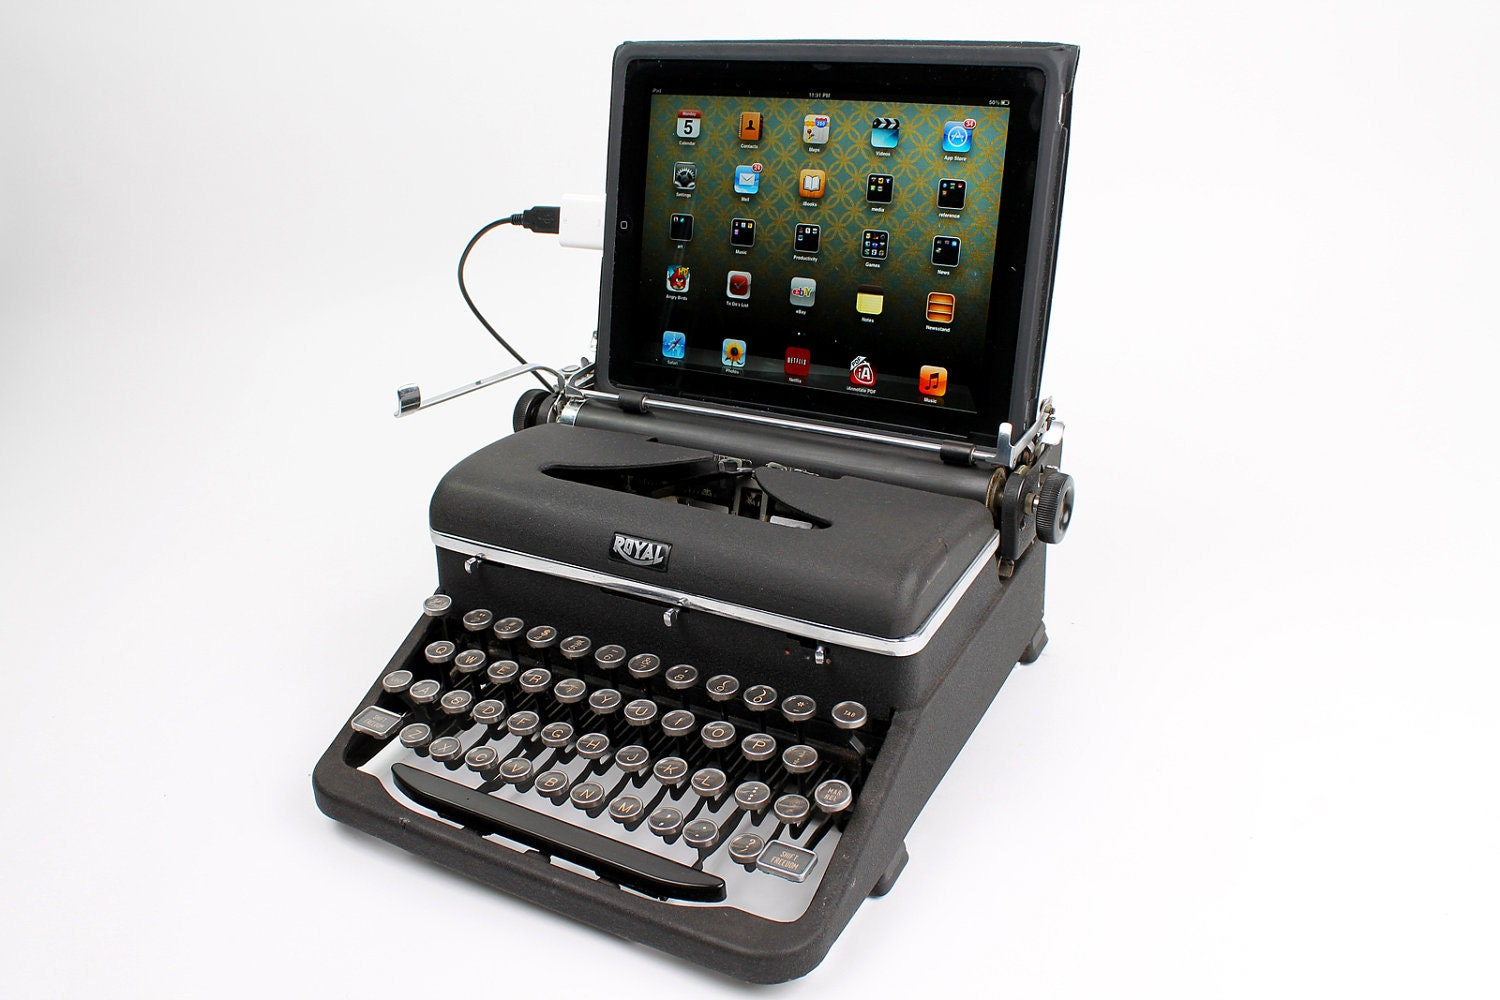 USB Typewriter Computer Keyboard and iPad Dock by ... | 1500 x 1000 jpeg 158kB